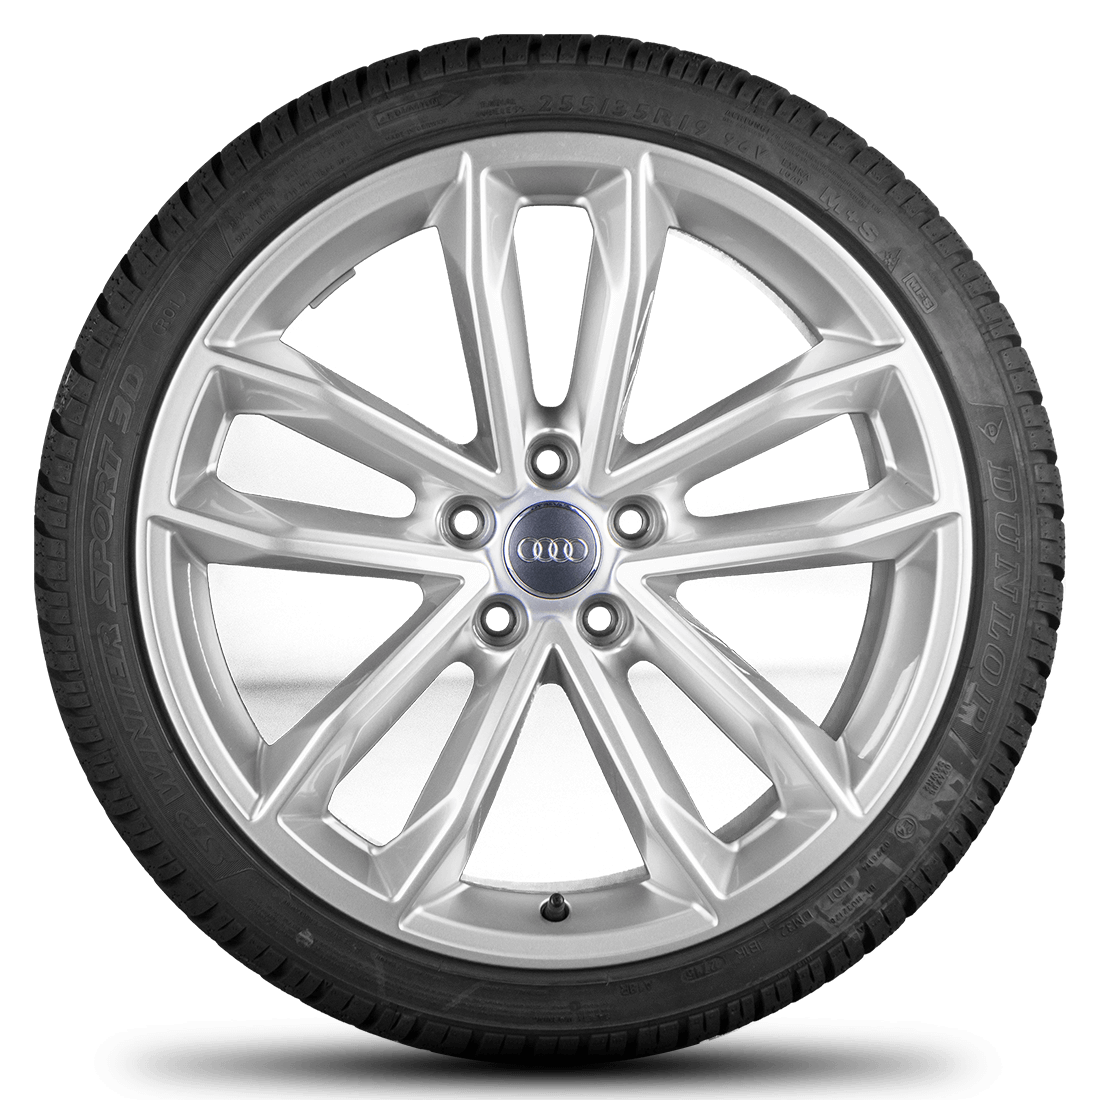 Audi A5 S5 8W F5 19 Inch Alloy Wheels Rim Winter Tyres Rotor S